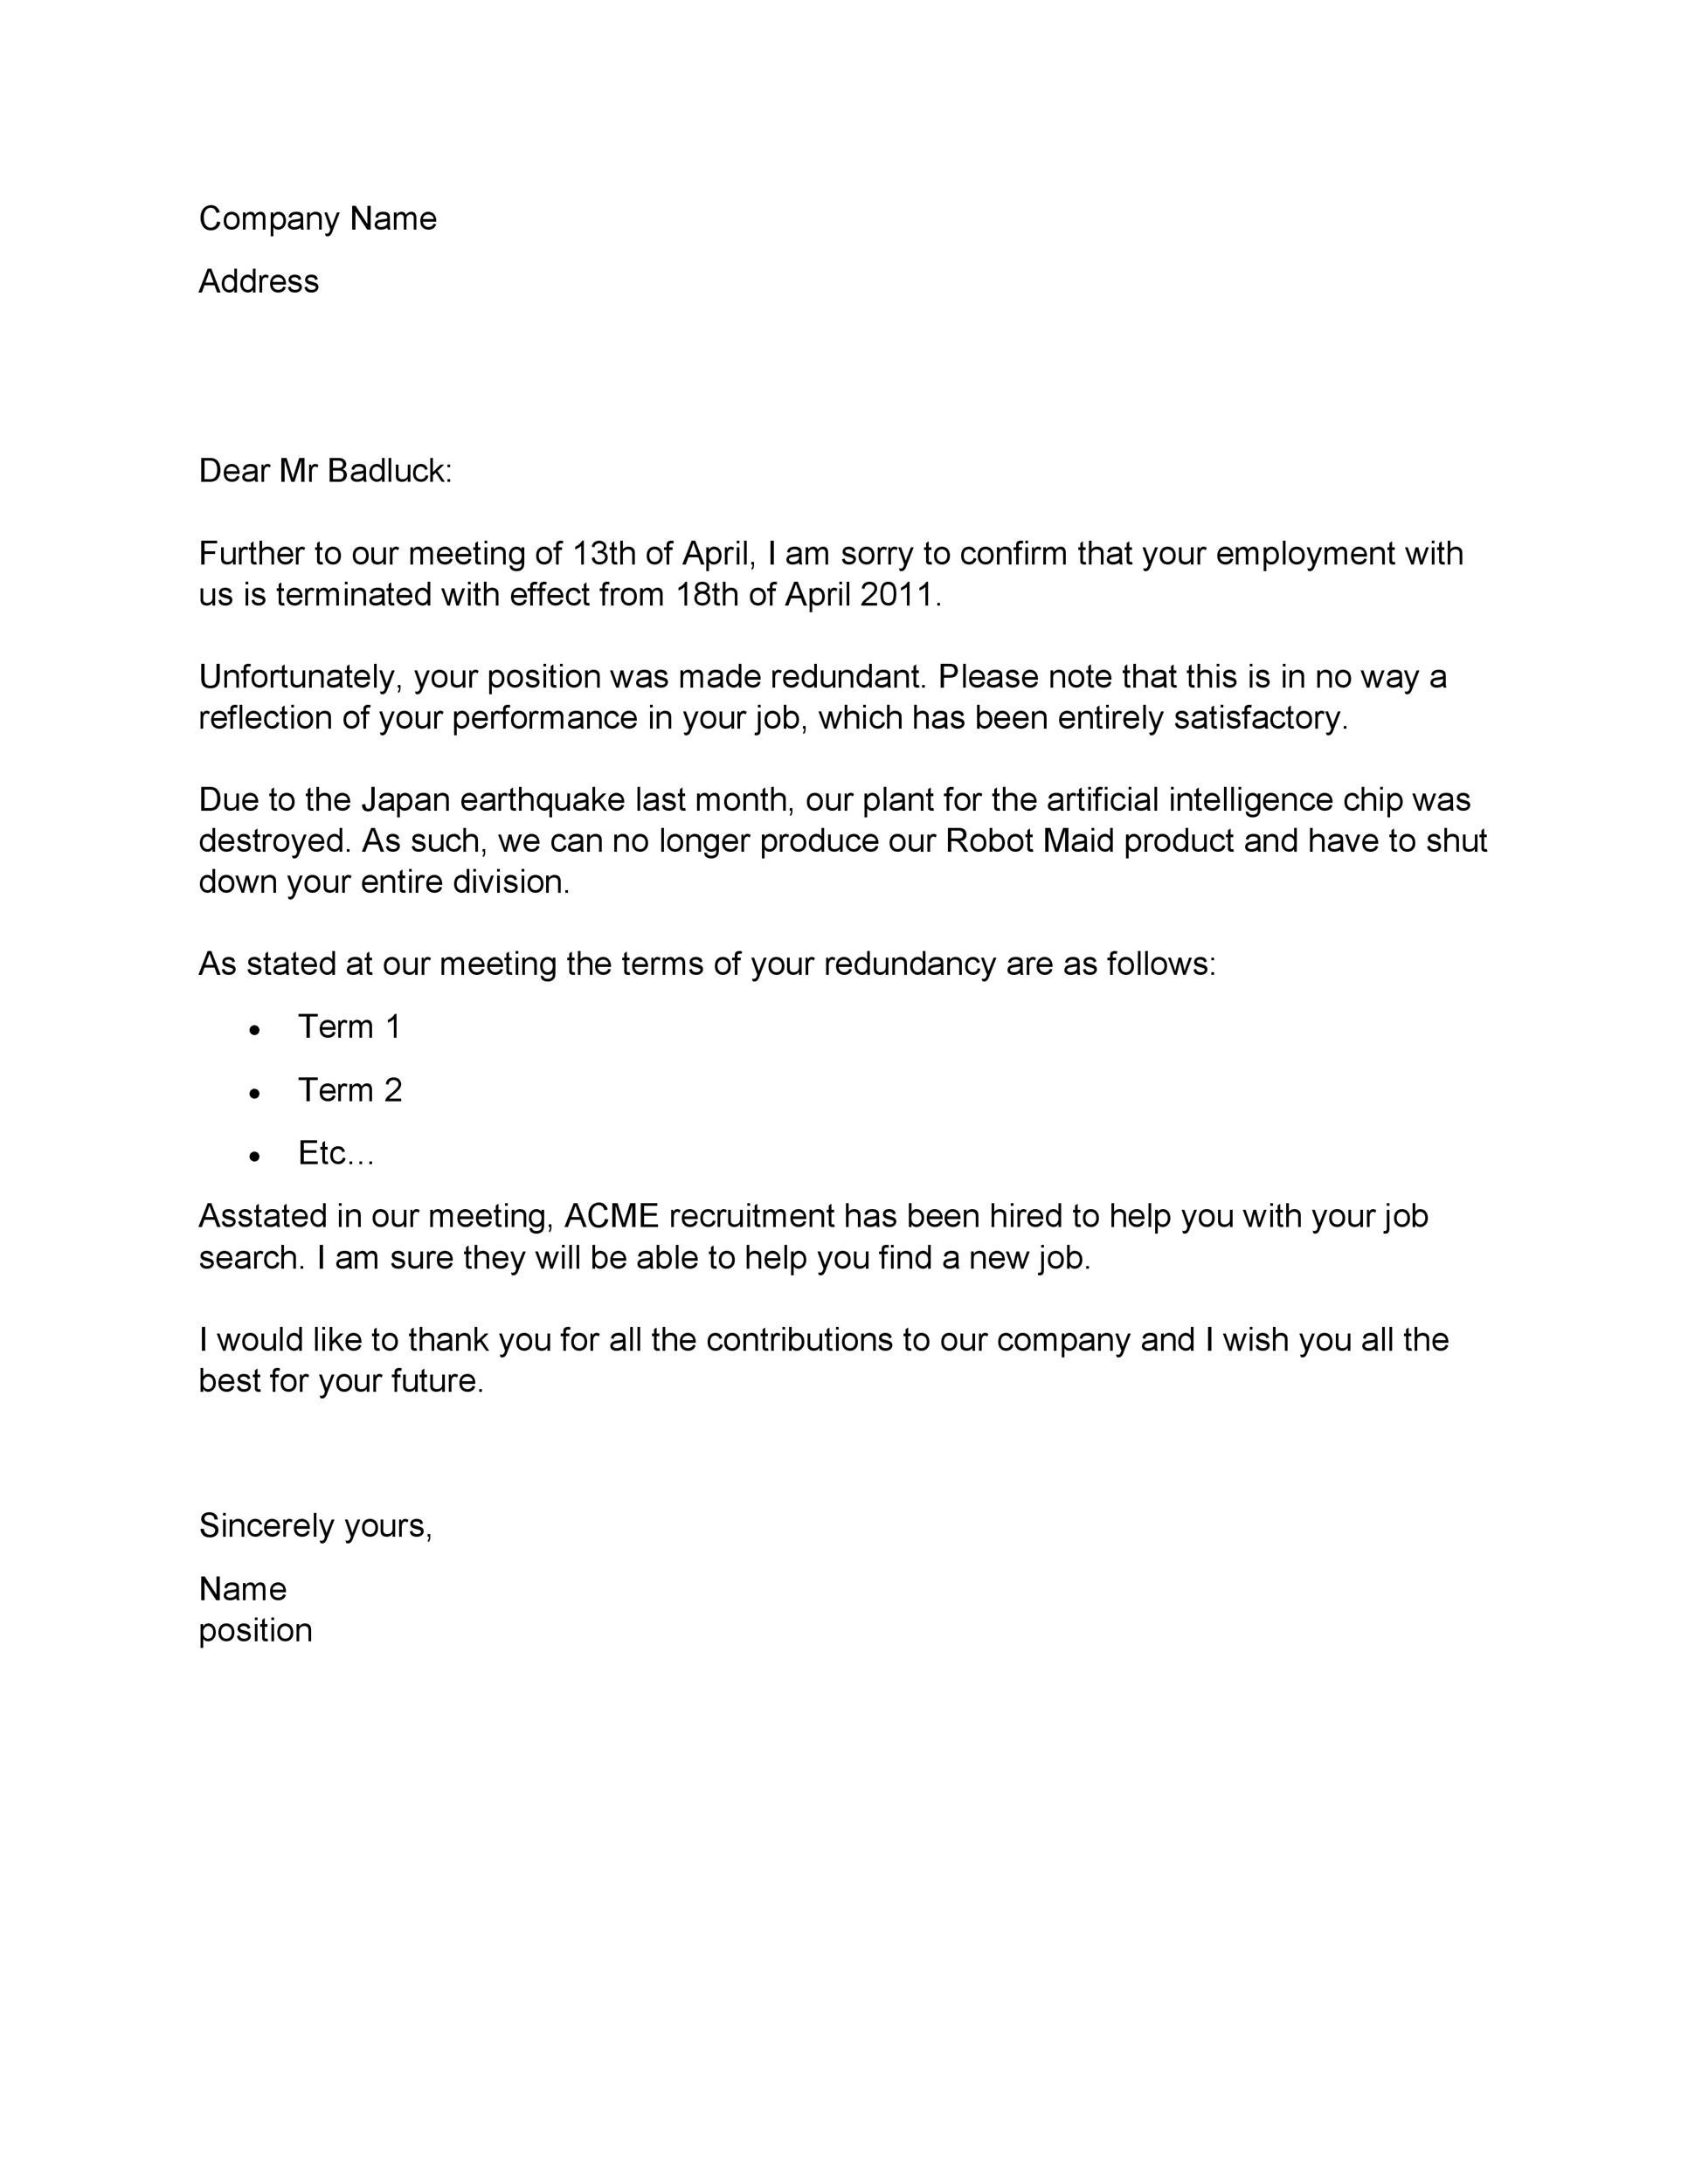 35 Perfect Termination Letter Samples Lease Employee Contract – Samples of Termination Letter